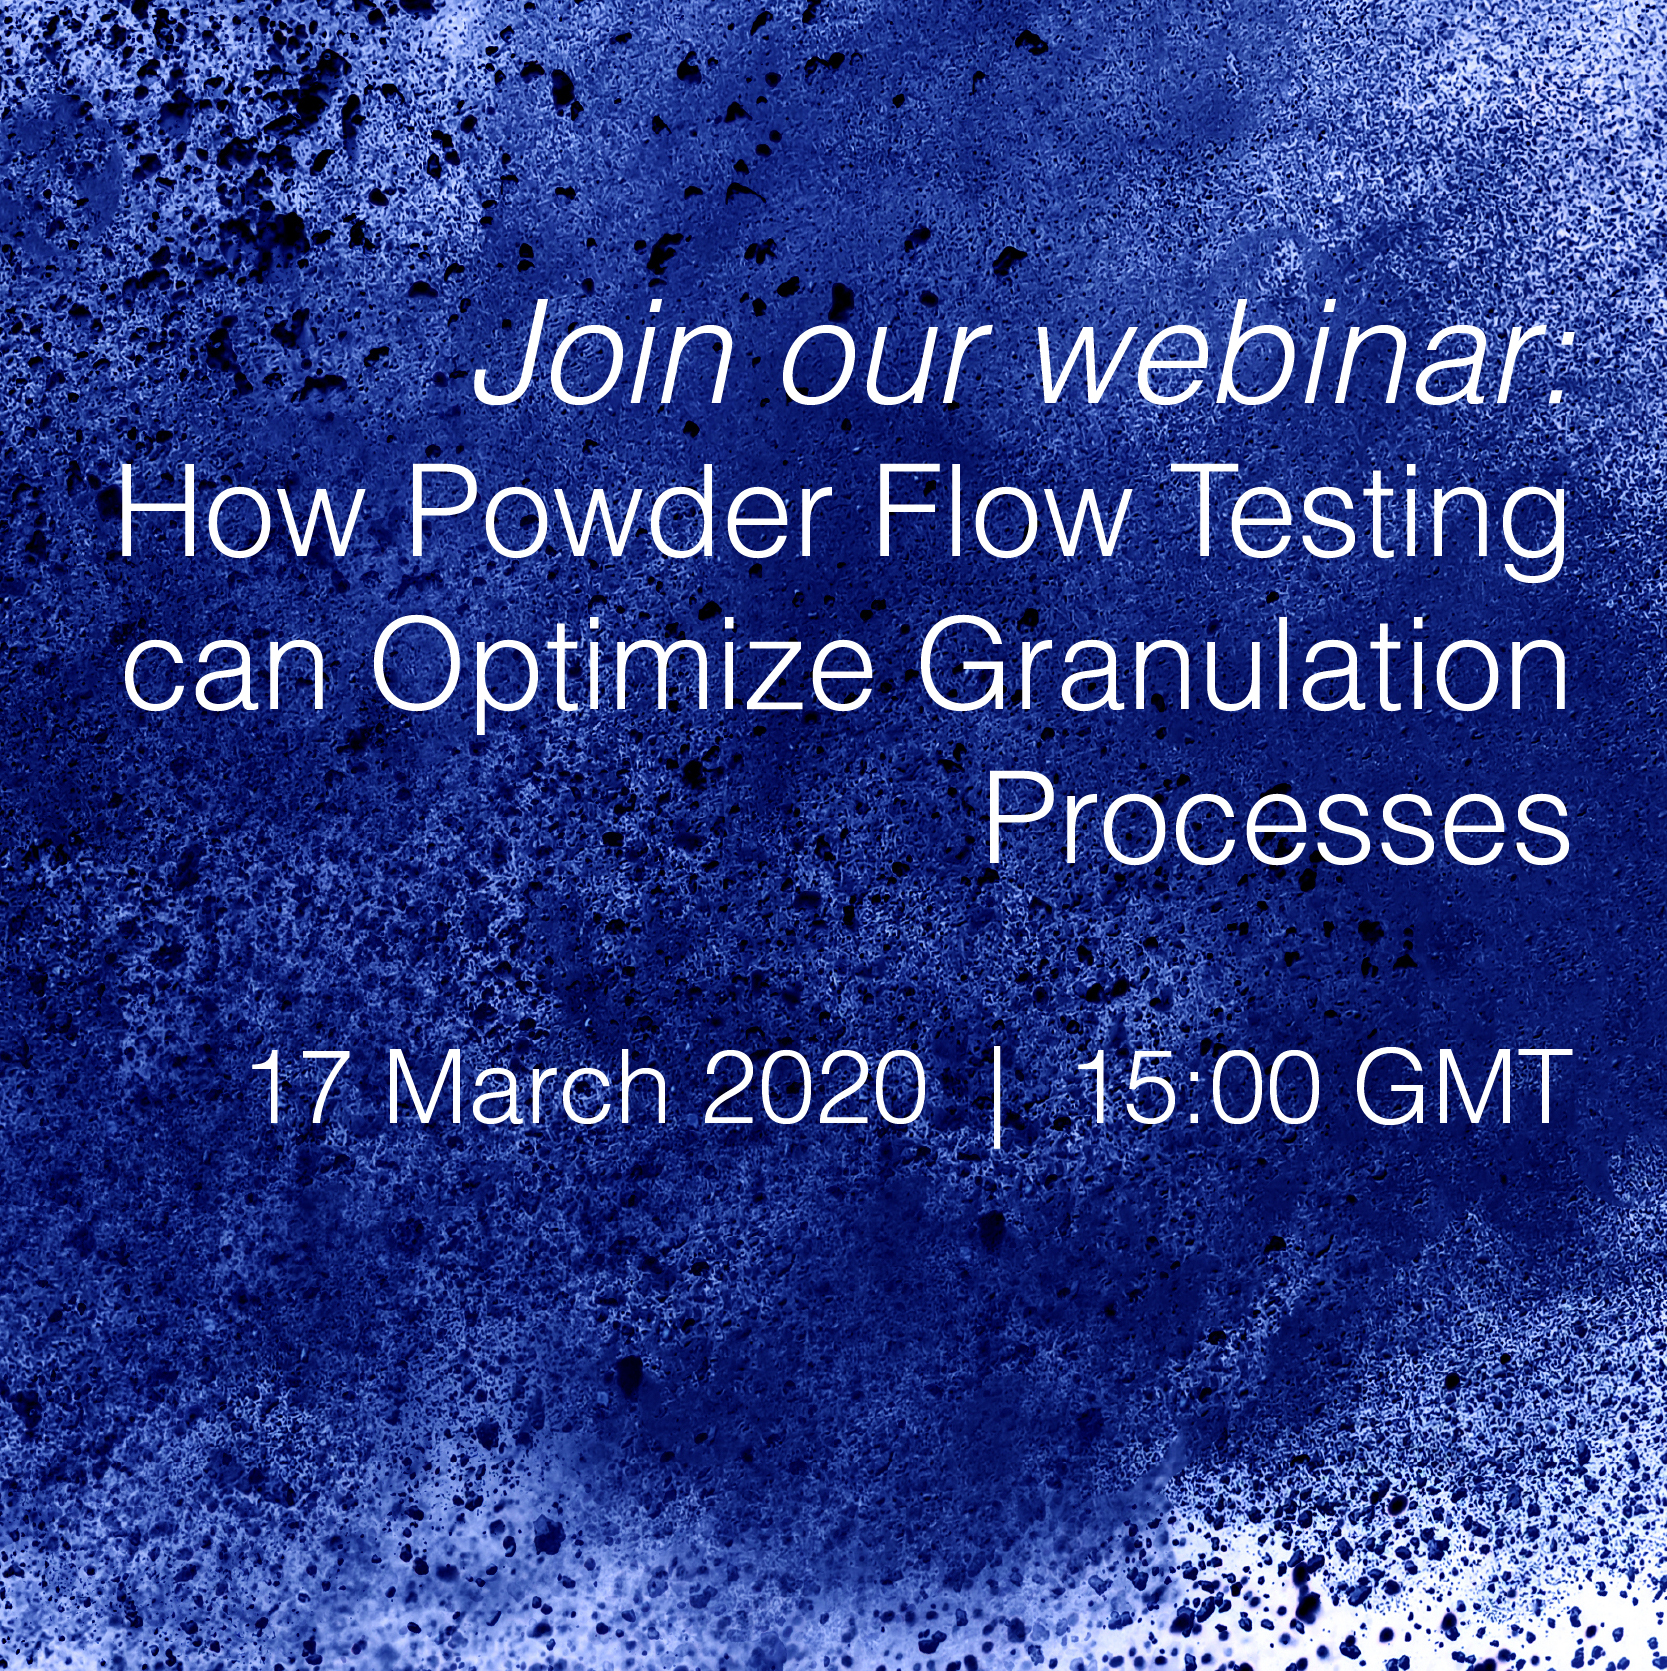 Powder Flow Testing can Optimize Granulation Processes